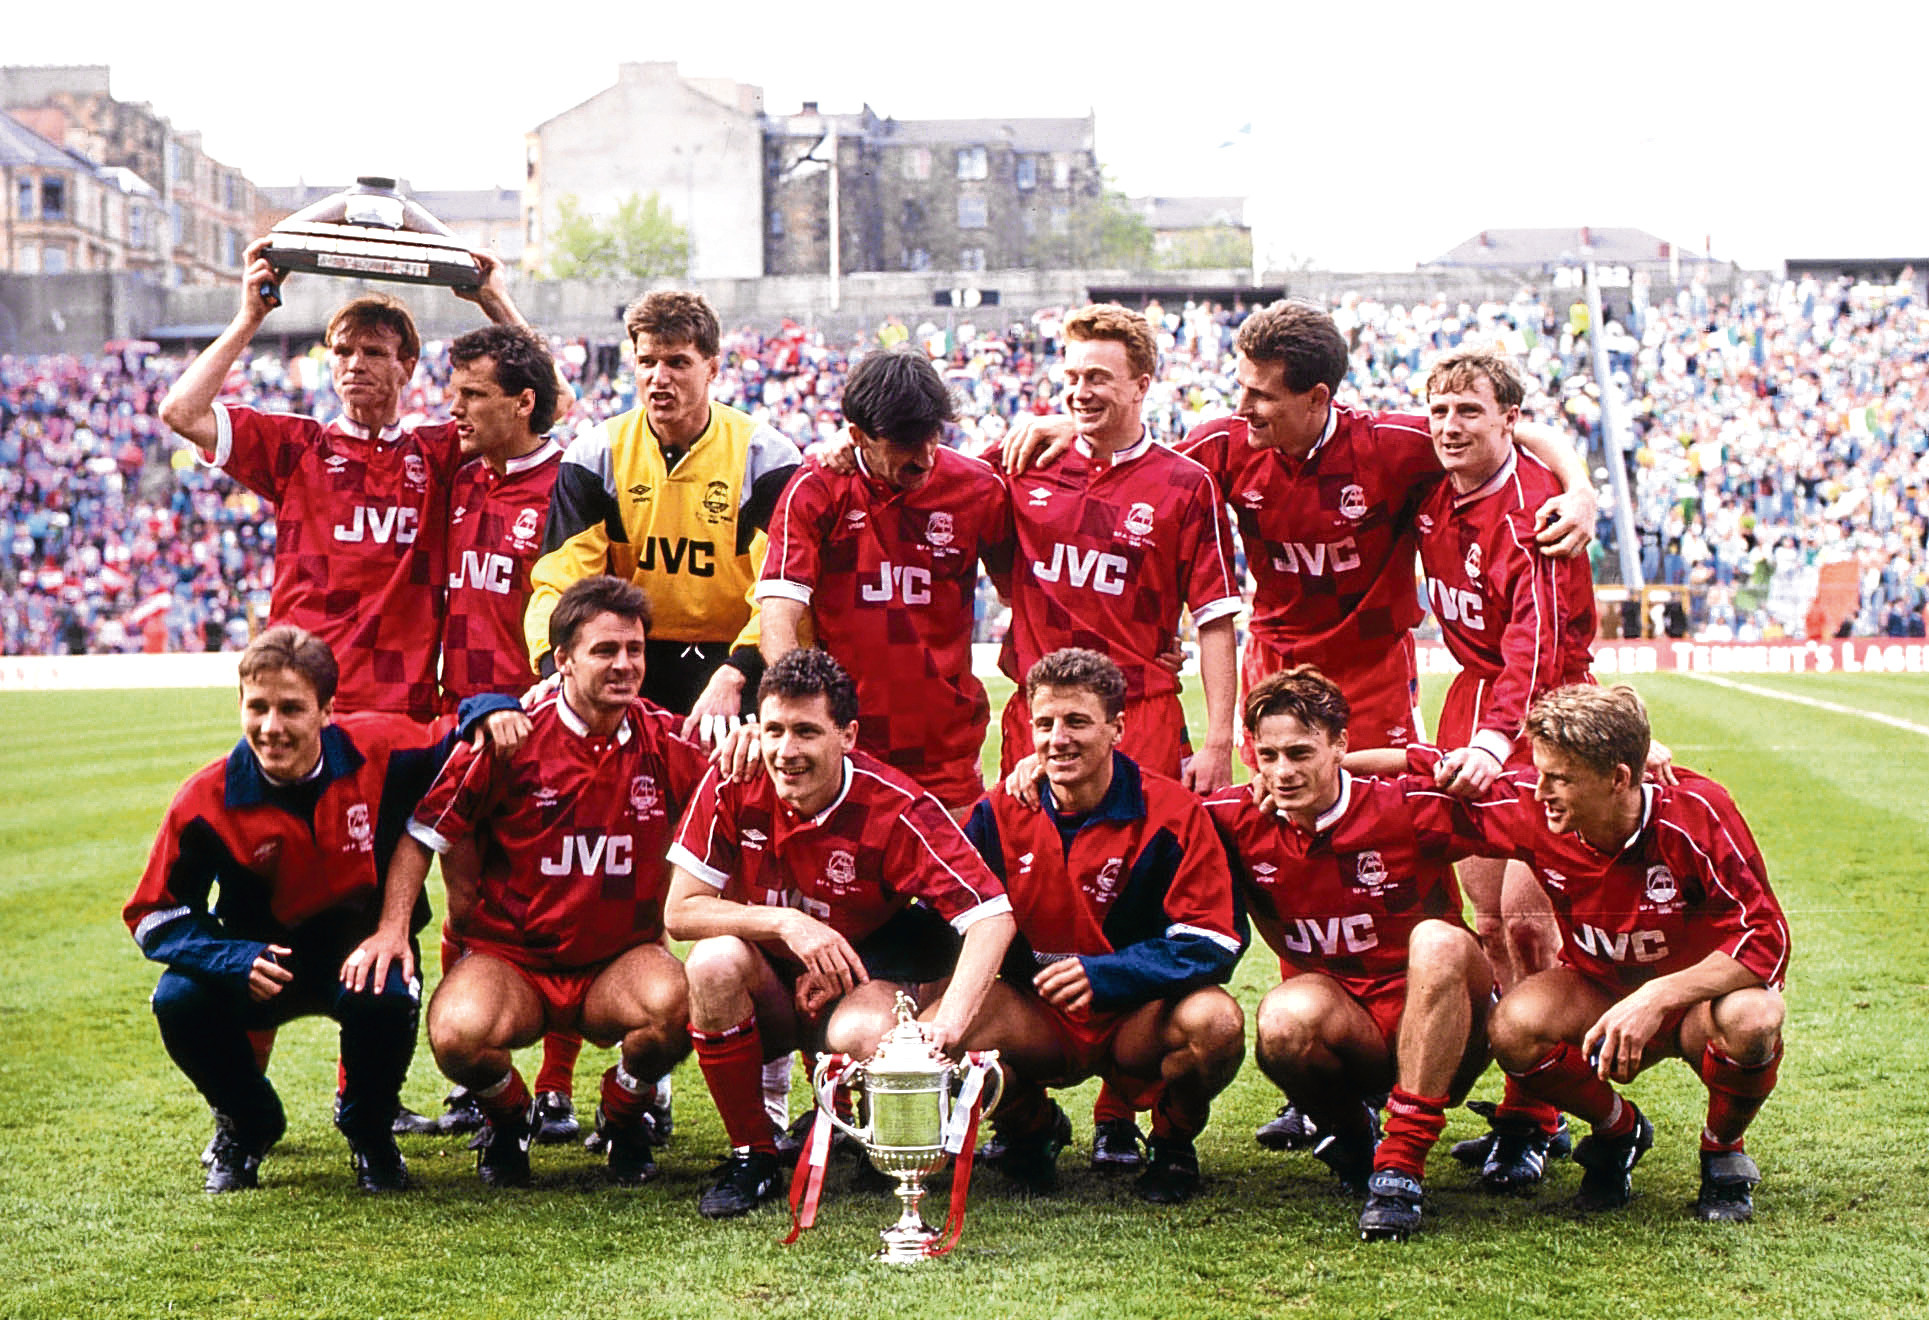 Paul Mason with the Scottish Cup in Aberdeen.